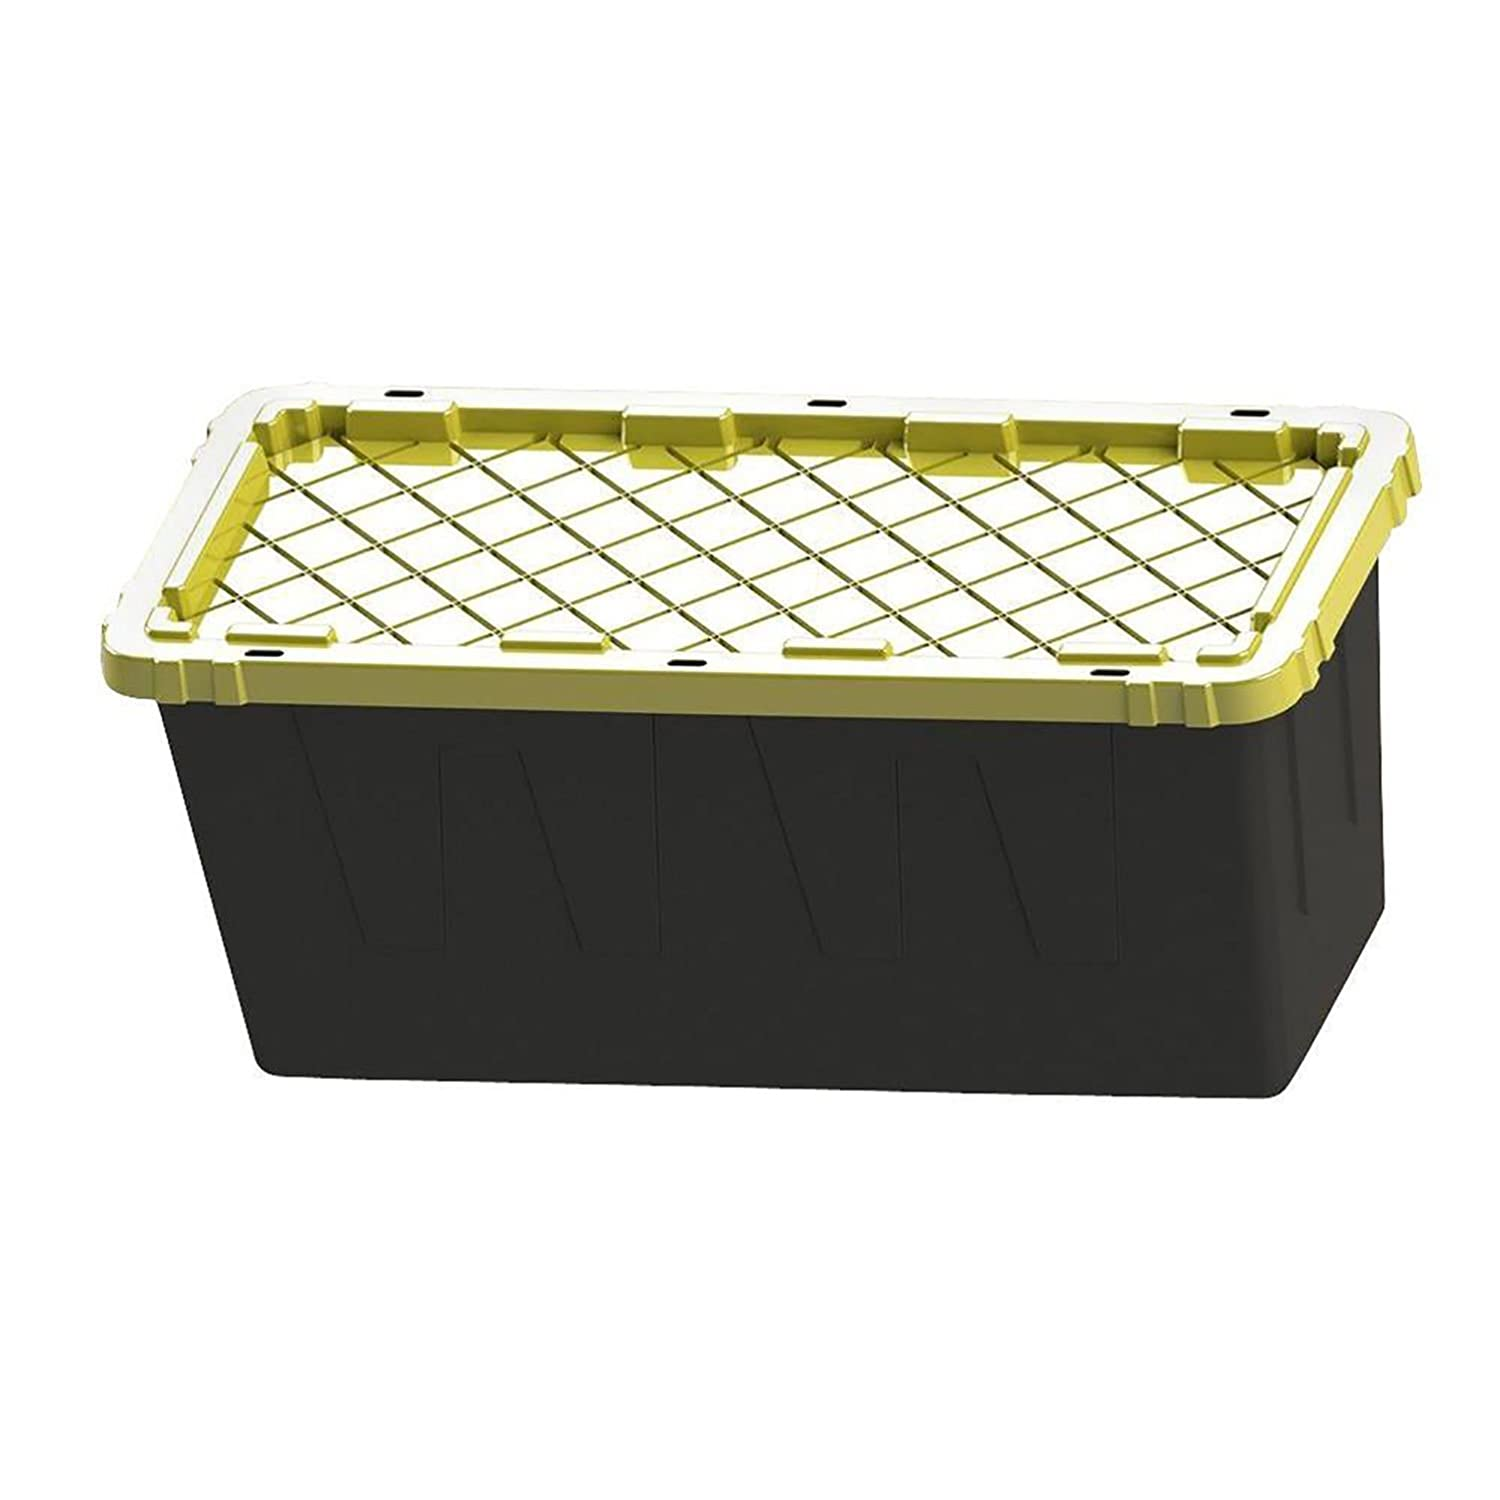 55 GAL STORAGE TOTE BOX Heavy Duty Garage Plastic Container Organizer With Lid HDX SH55TOUGHTLDB/Y